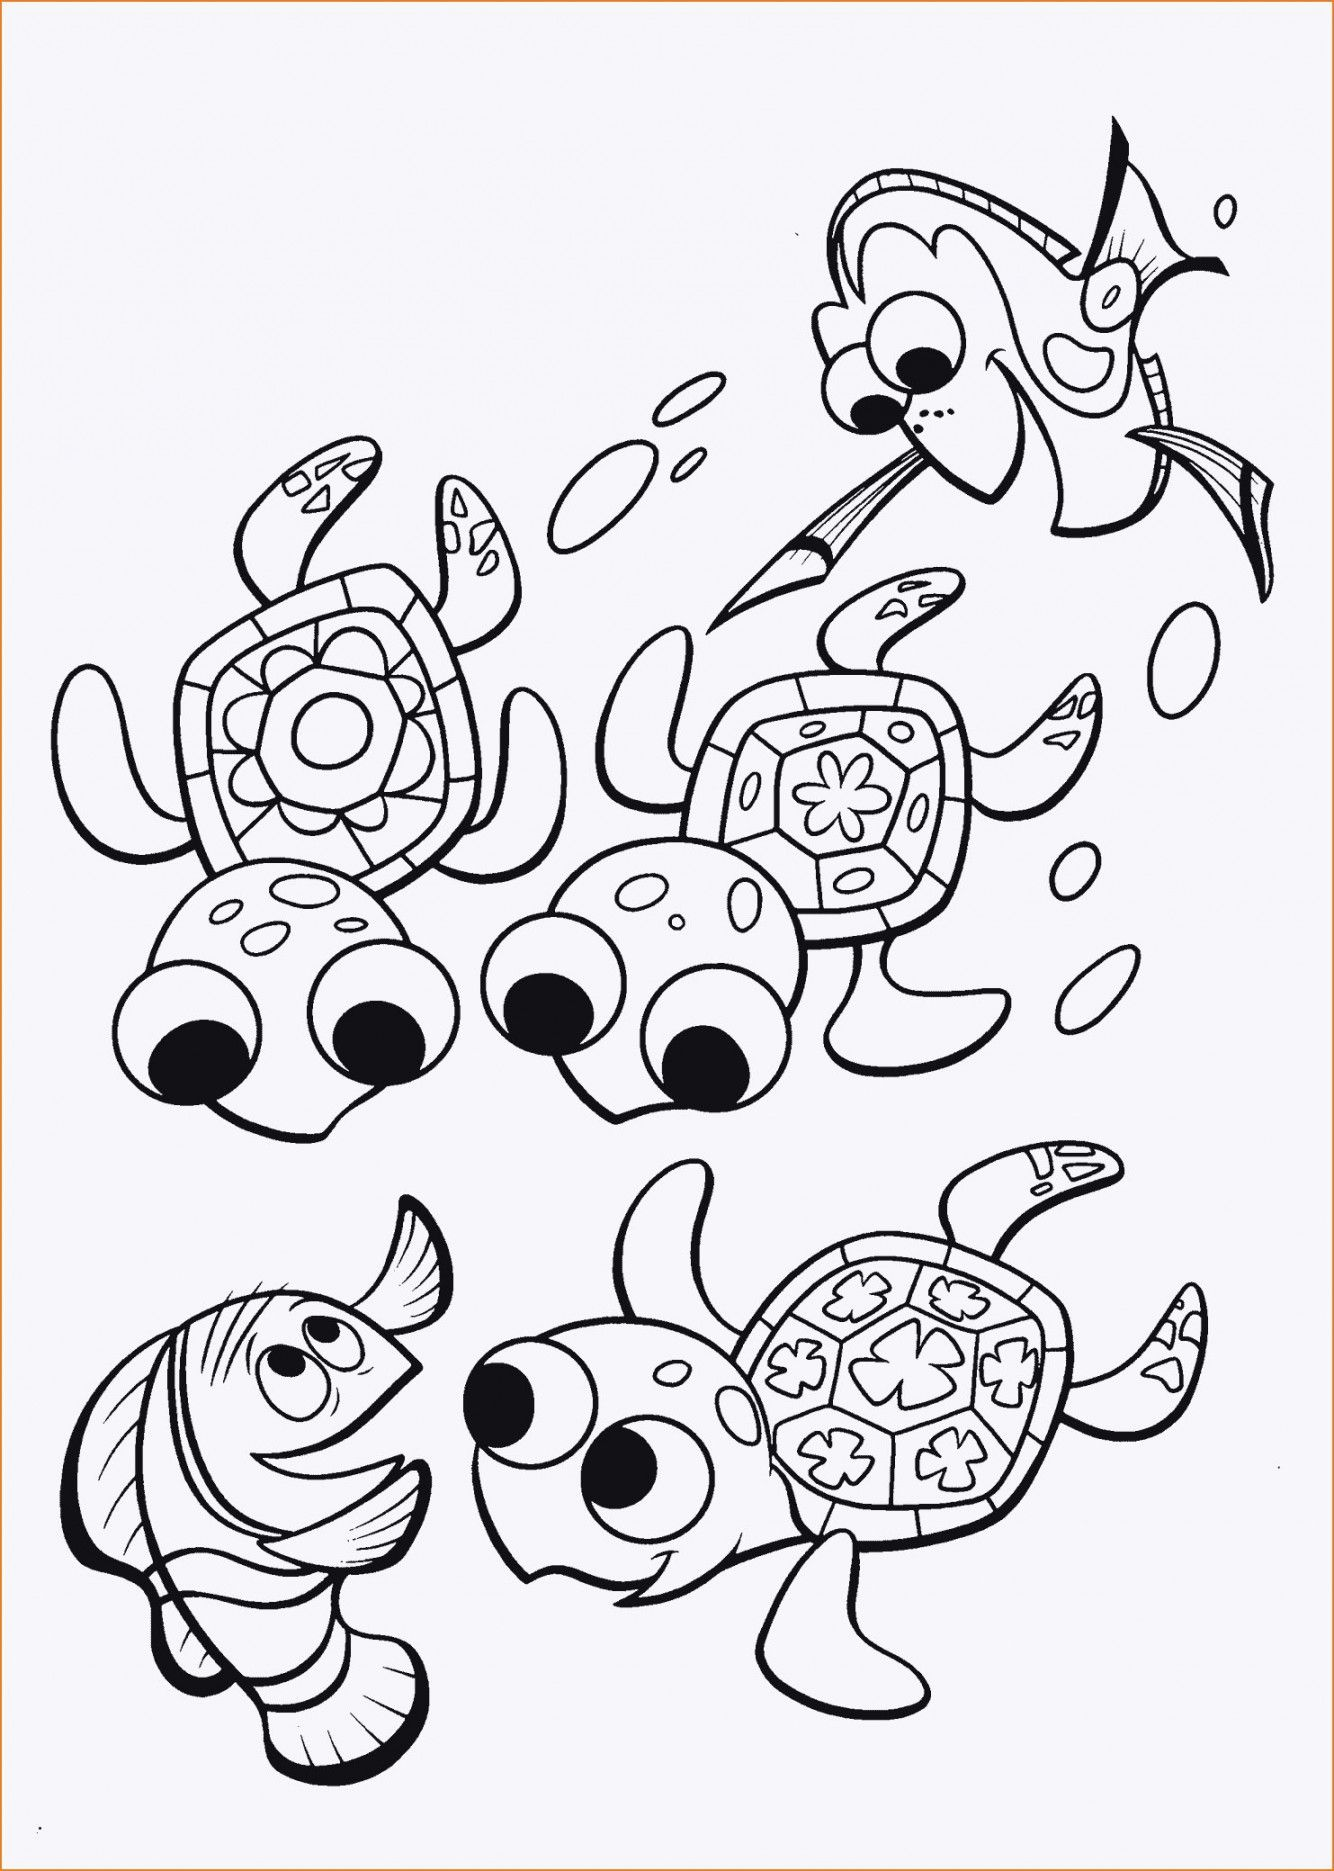 Baby Dory Coloring Pages Images Of Ausmalbilder Dorie Neu Dory